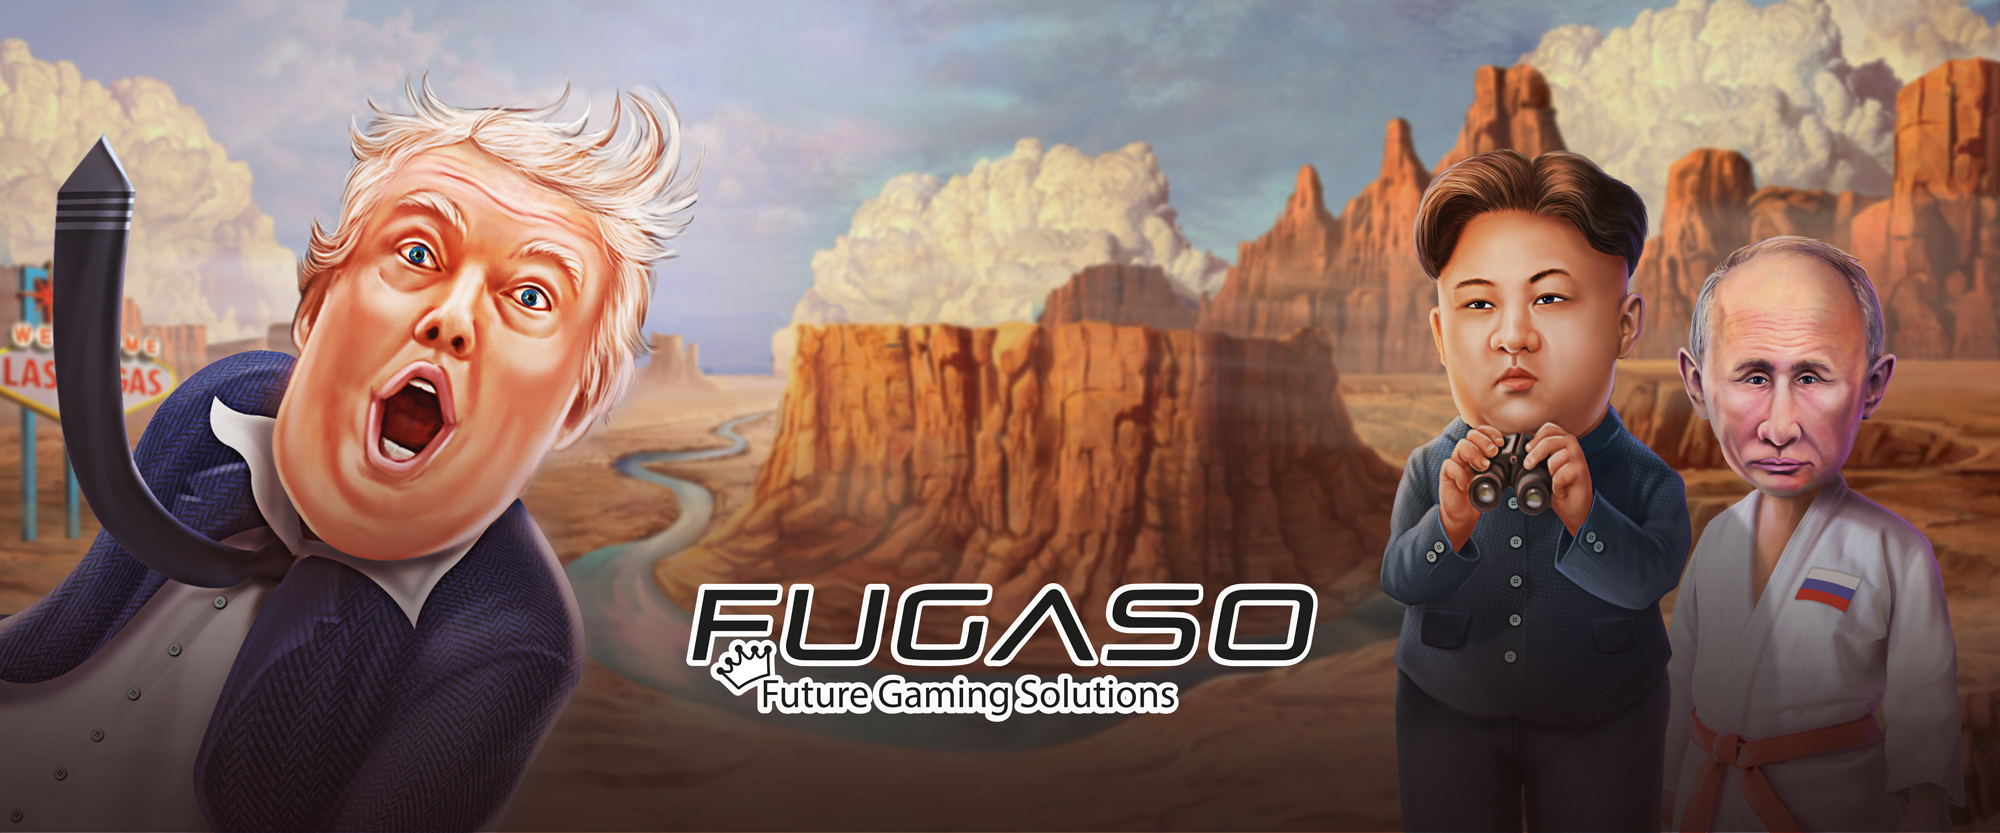 fugasocasino  logo trump it putin kim jong un future gaming solutions